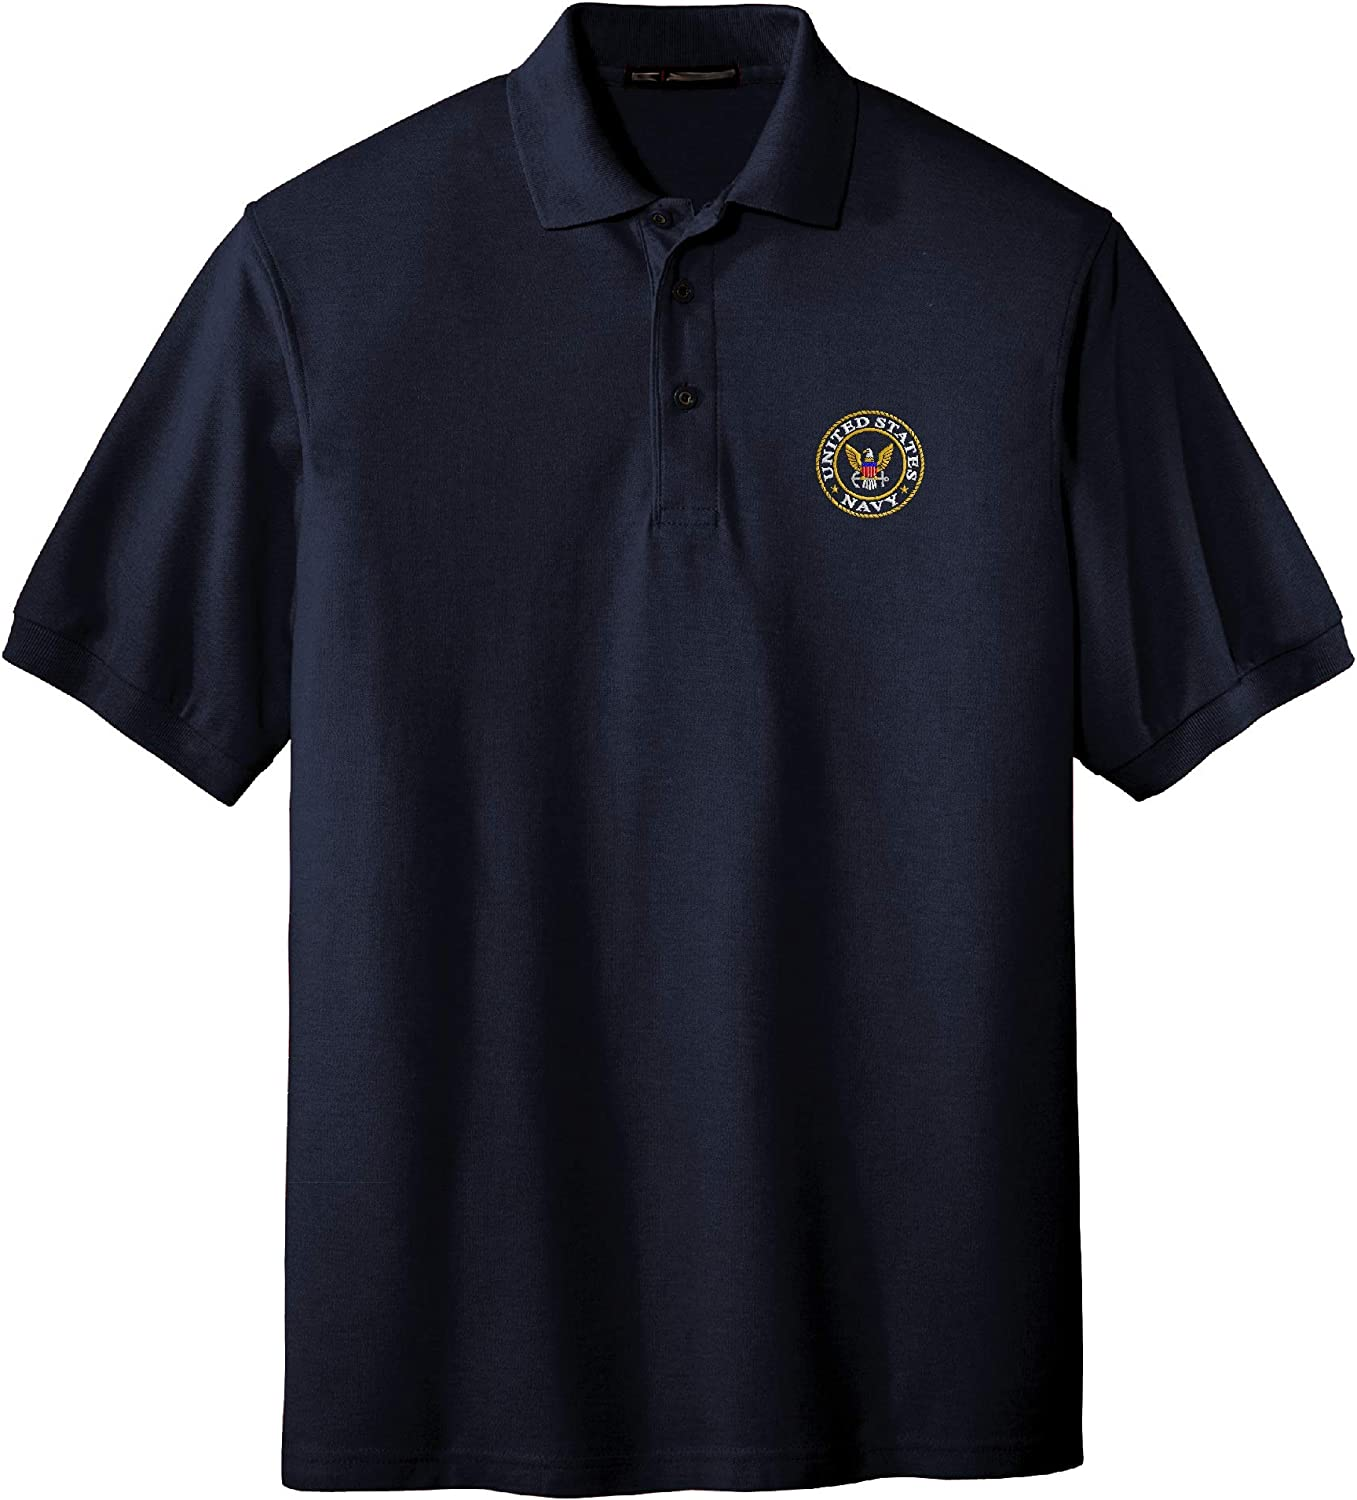 Spiffy Custom Gifts Mens U.S. Navy Embroidered sale Logo Shirt Polo Selling and selling